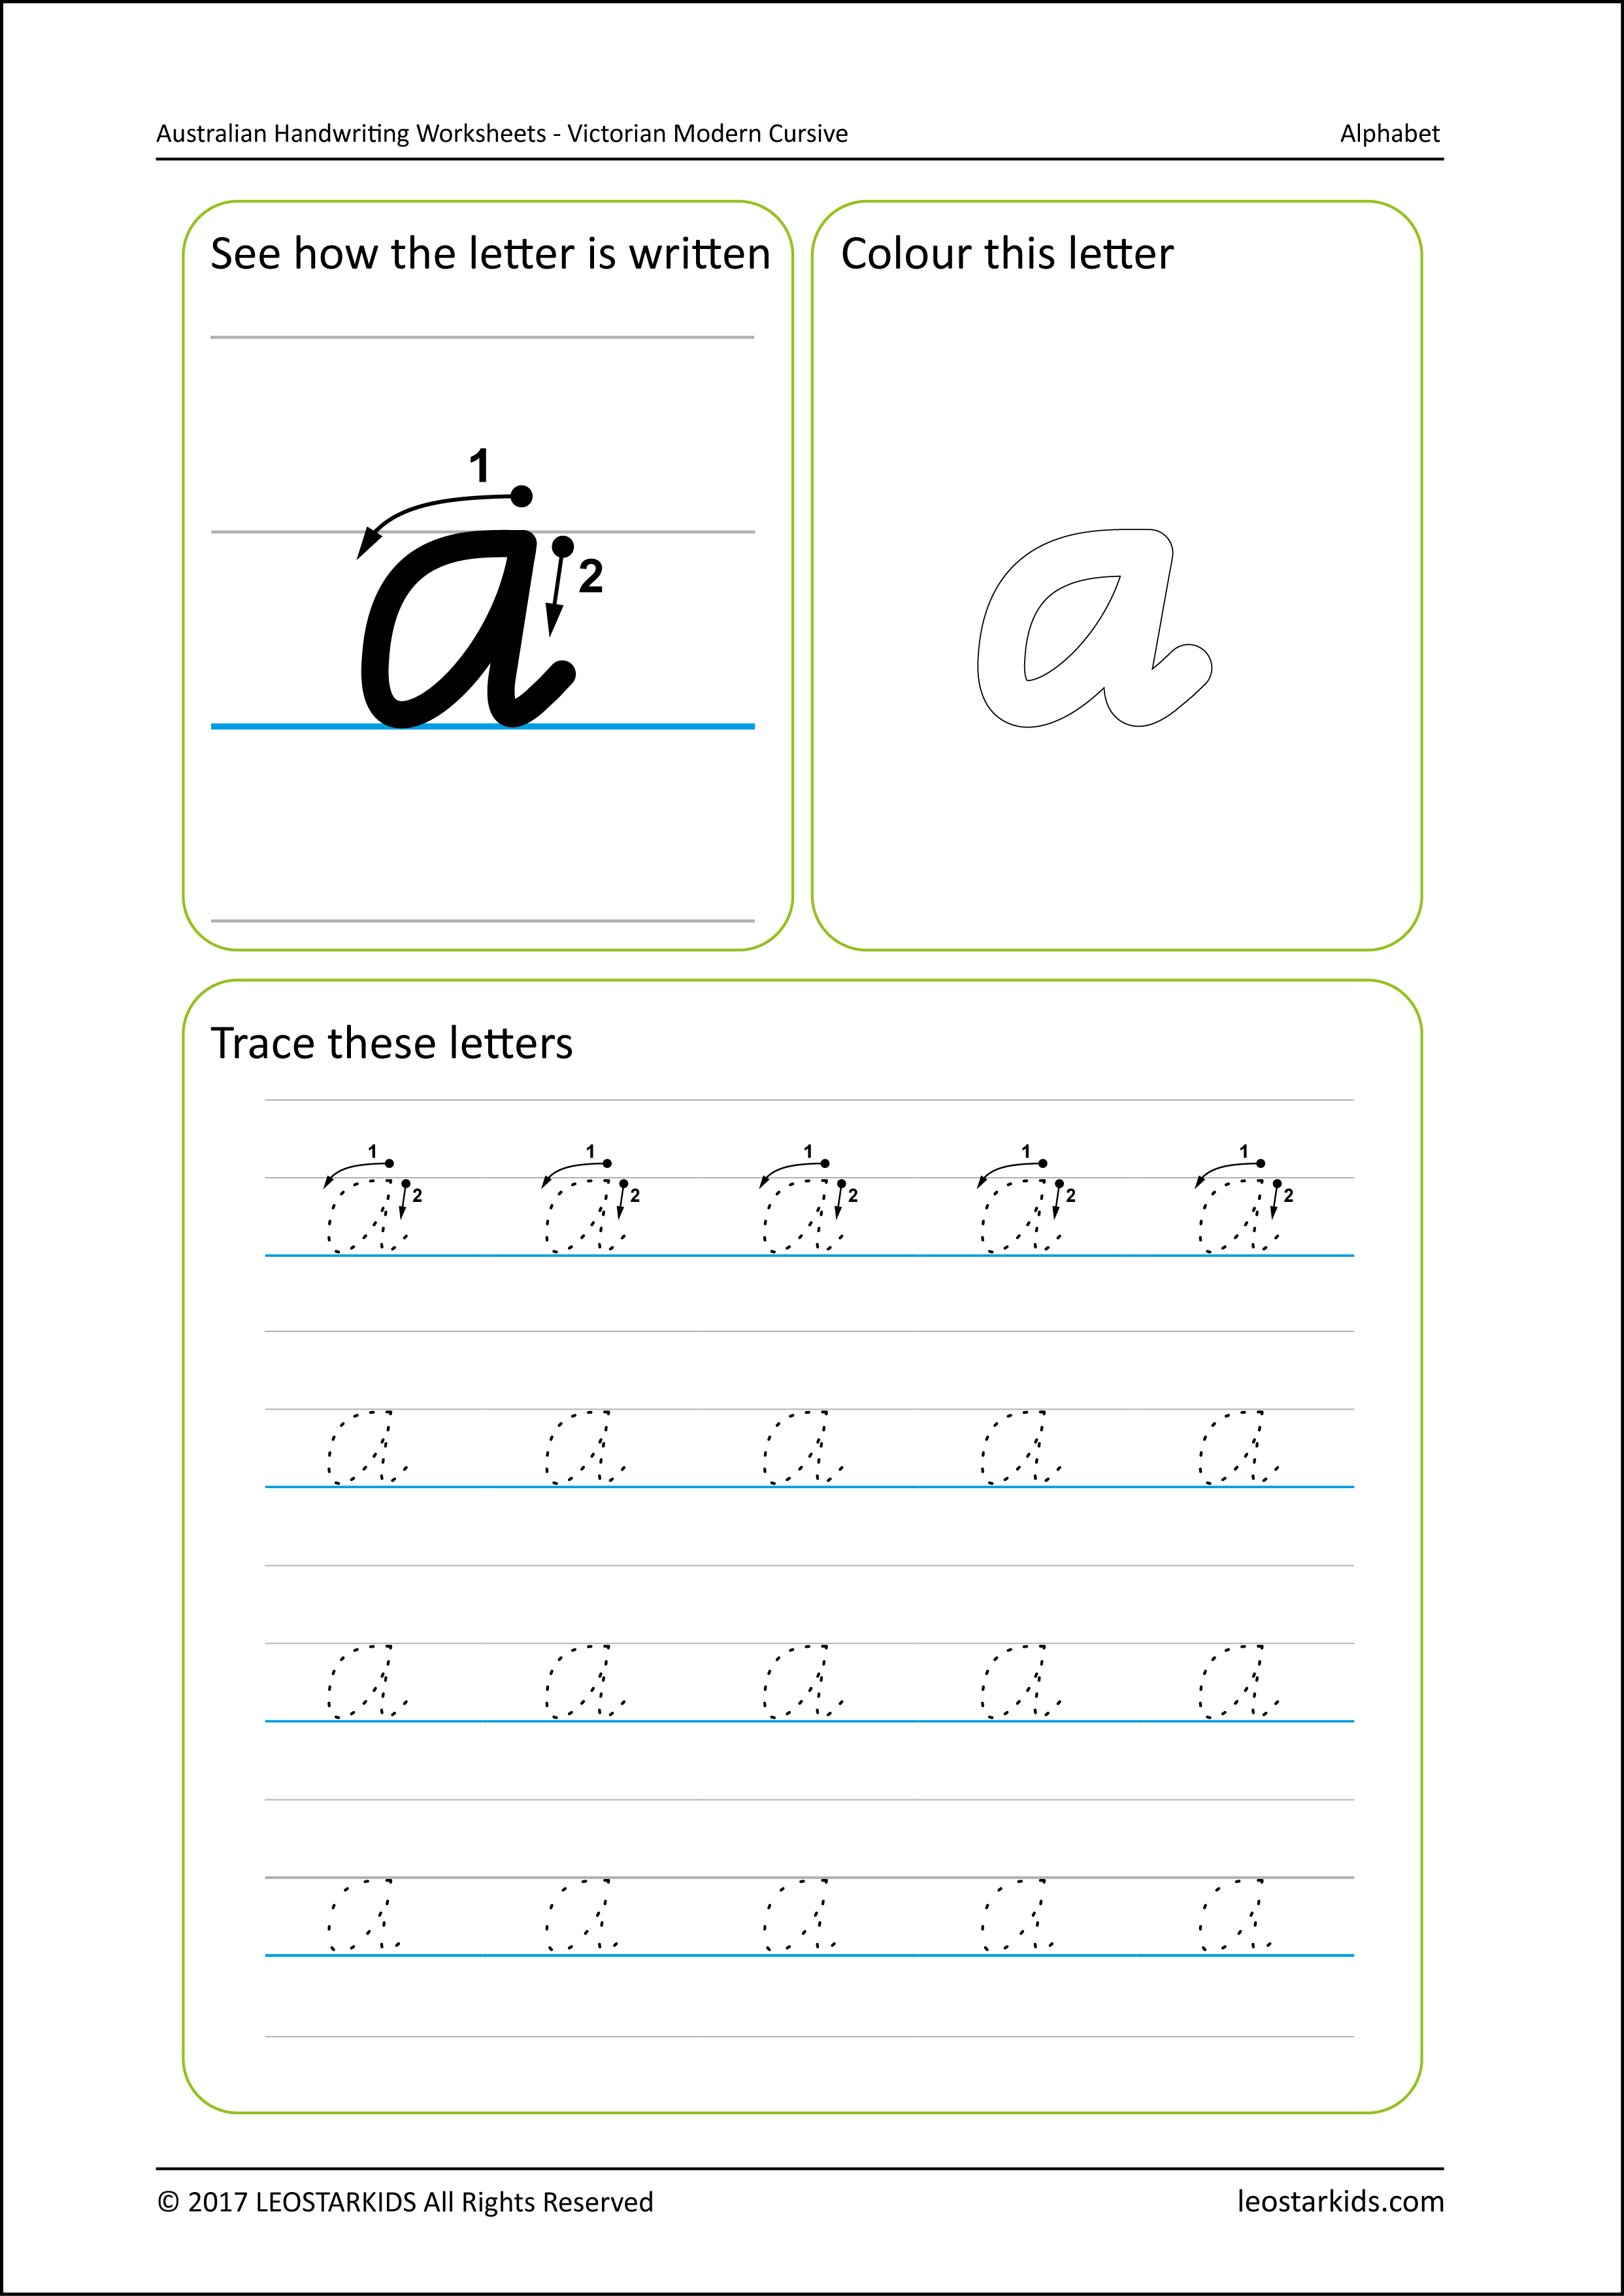 Australian Handwriting Worksheets - Victorian Modern Cursive with Name Tracing Victorian Modern Cursive